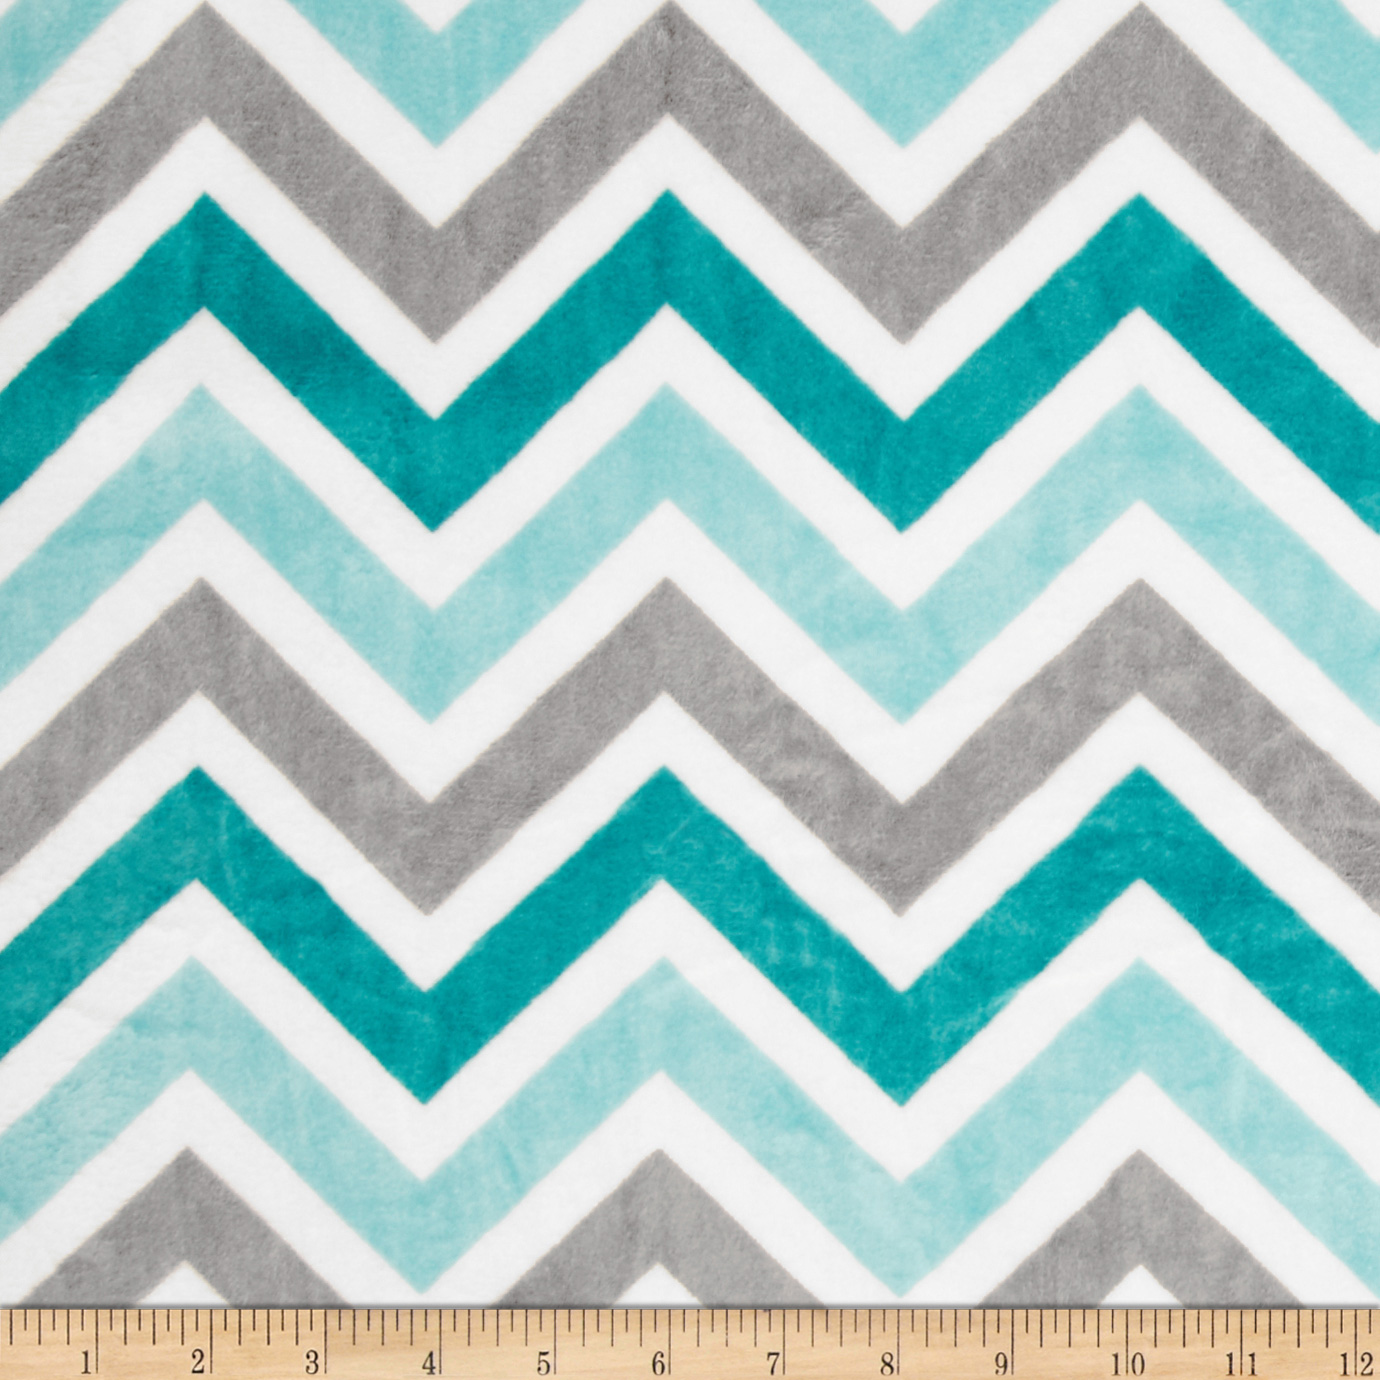 Minky Cuddle Zig Zag Topaz/Charcoal/Snow Fabric